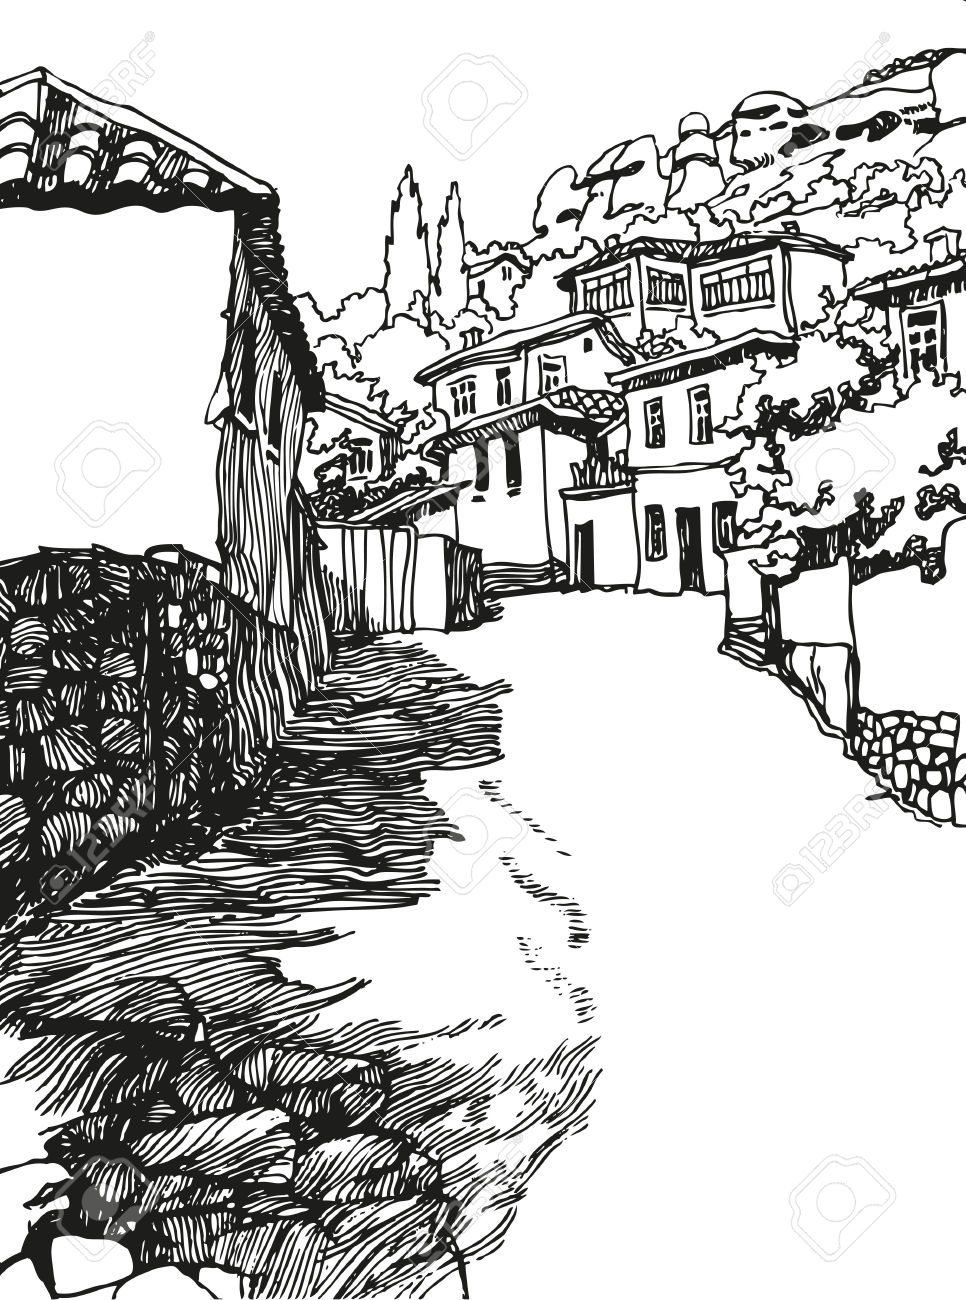 966x1300 Landscape Black And White Drawing Drawn Mountain Black And White